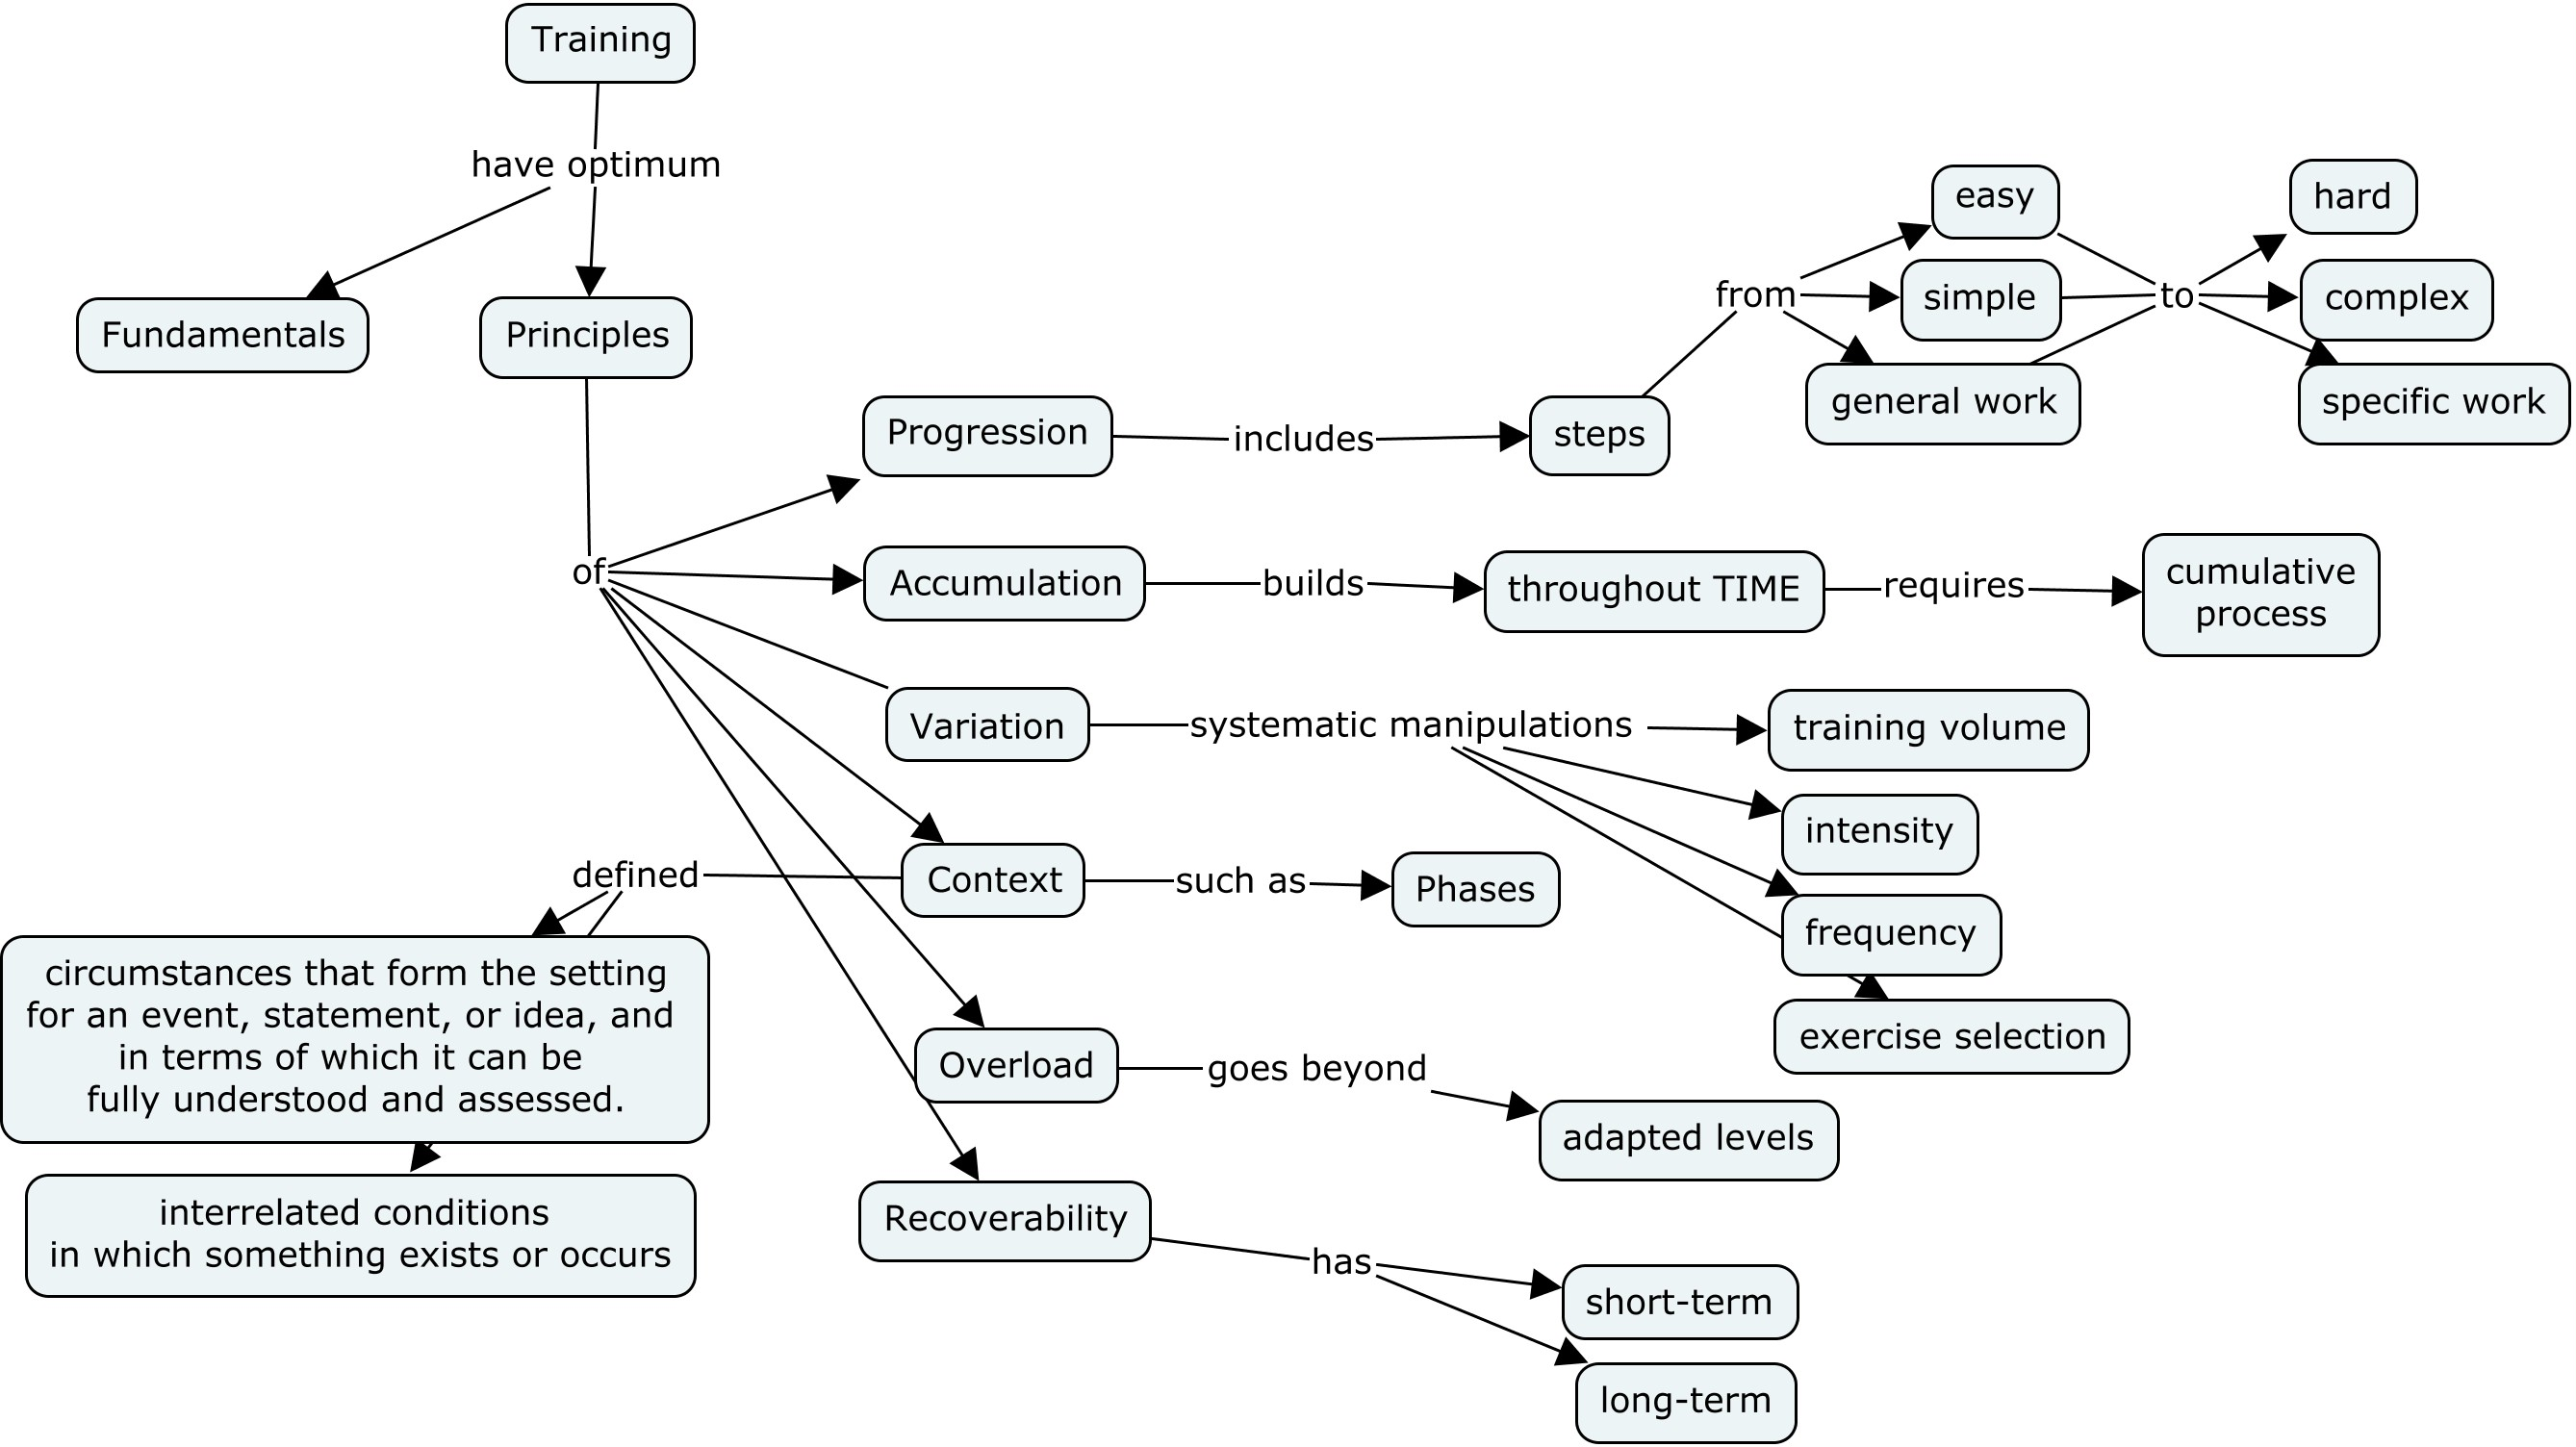 concept map on training principles